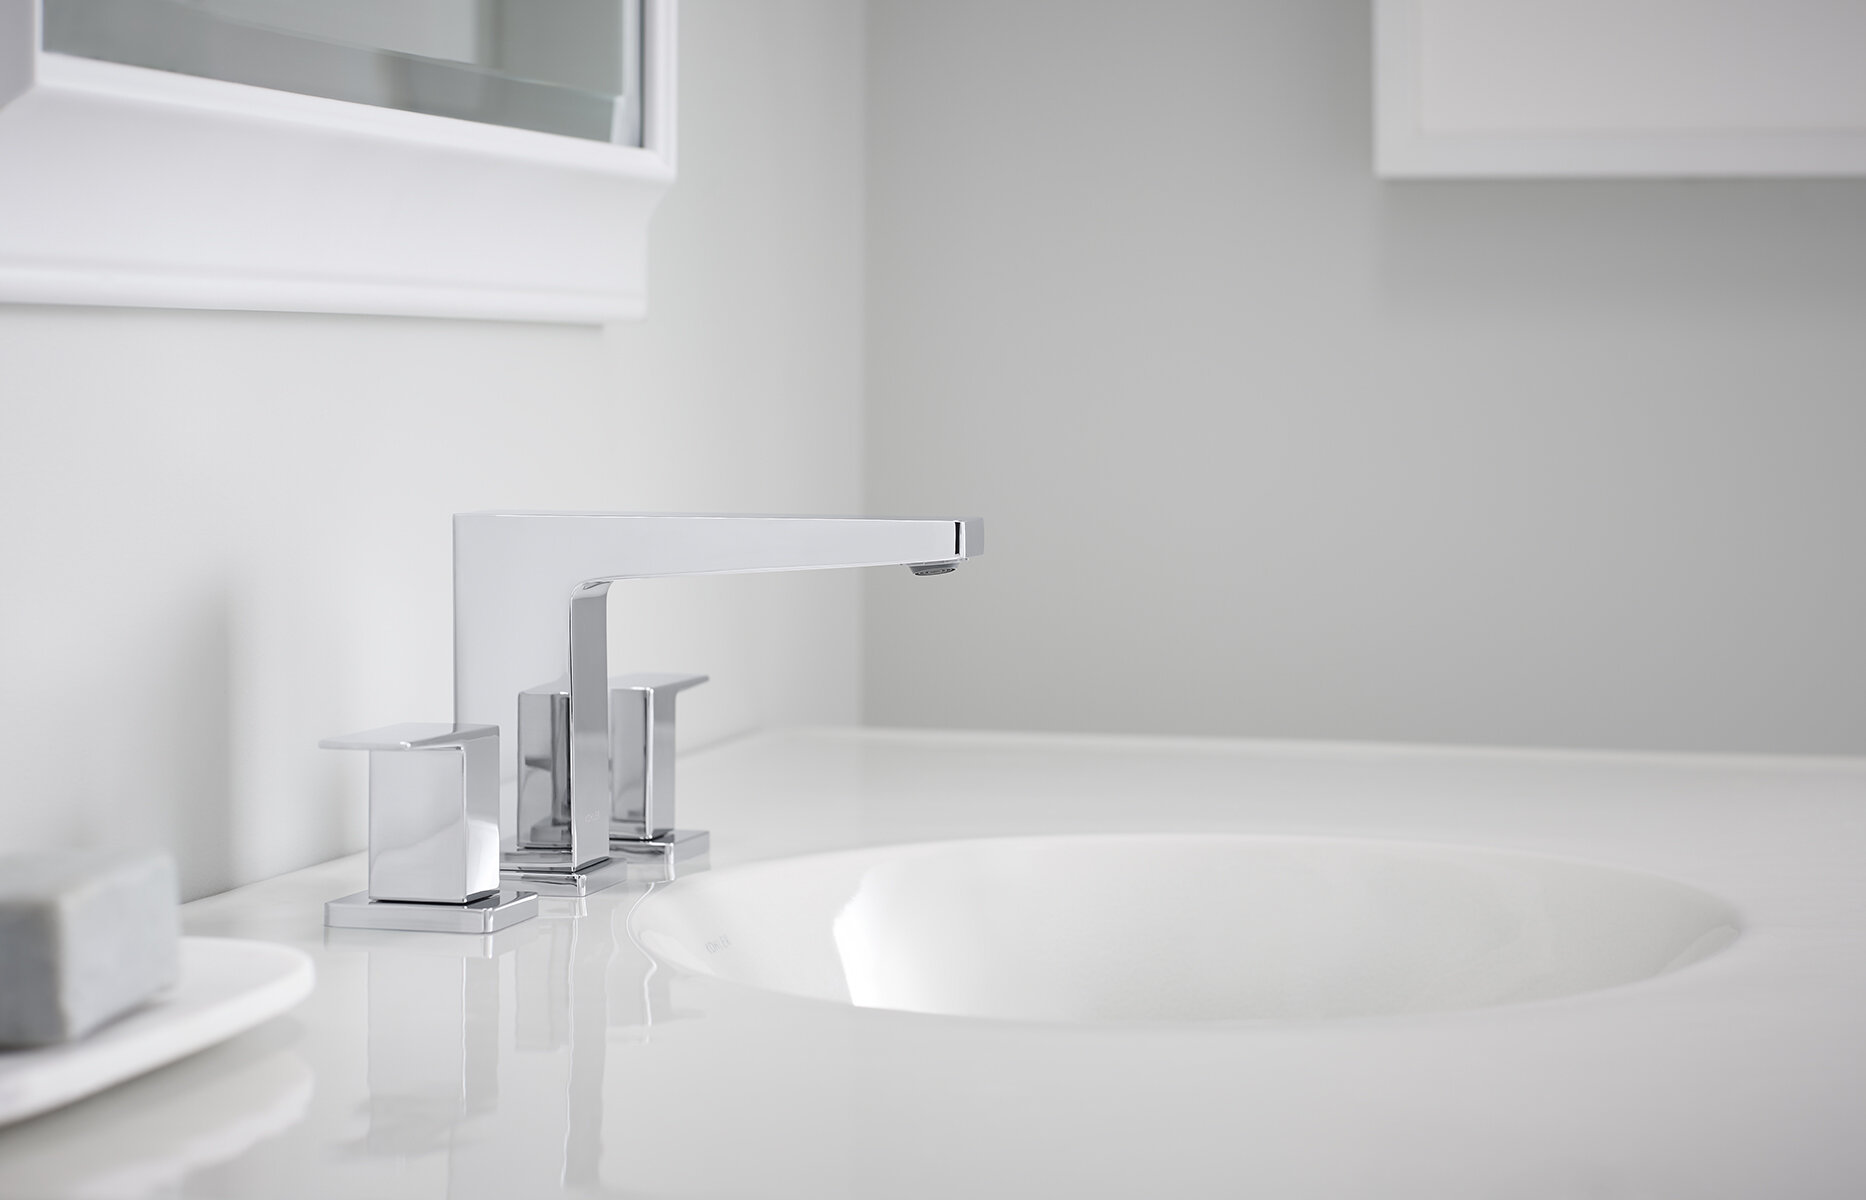 Kohler Honesty Widespread Bathroom Sink Faucet 1 2 Gpm Wayfair Ca